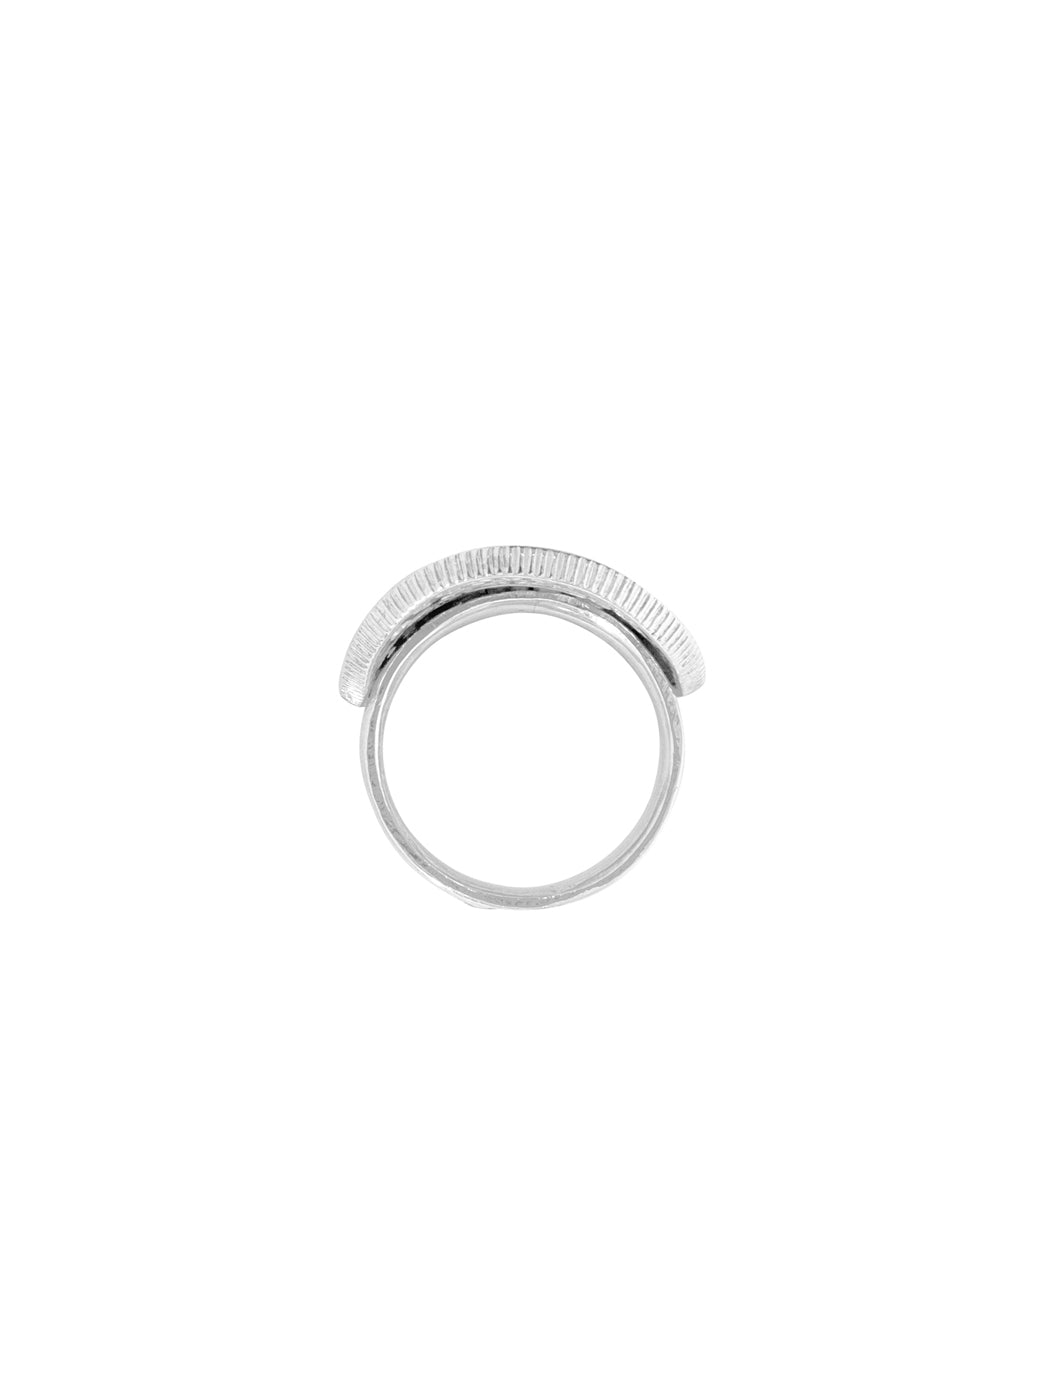 Fiorina Jewellery Bent Coin Ring Side View